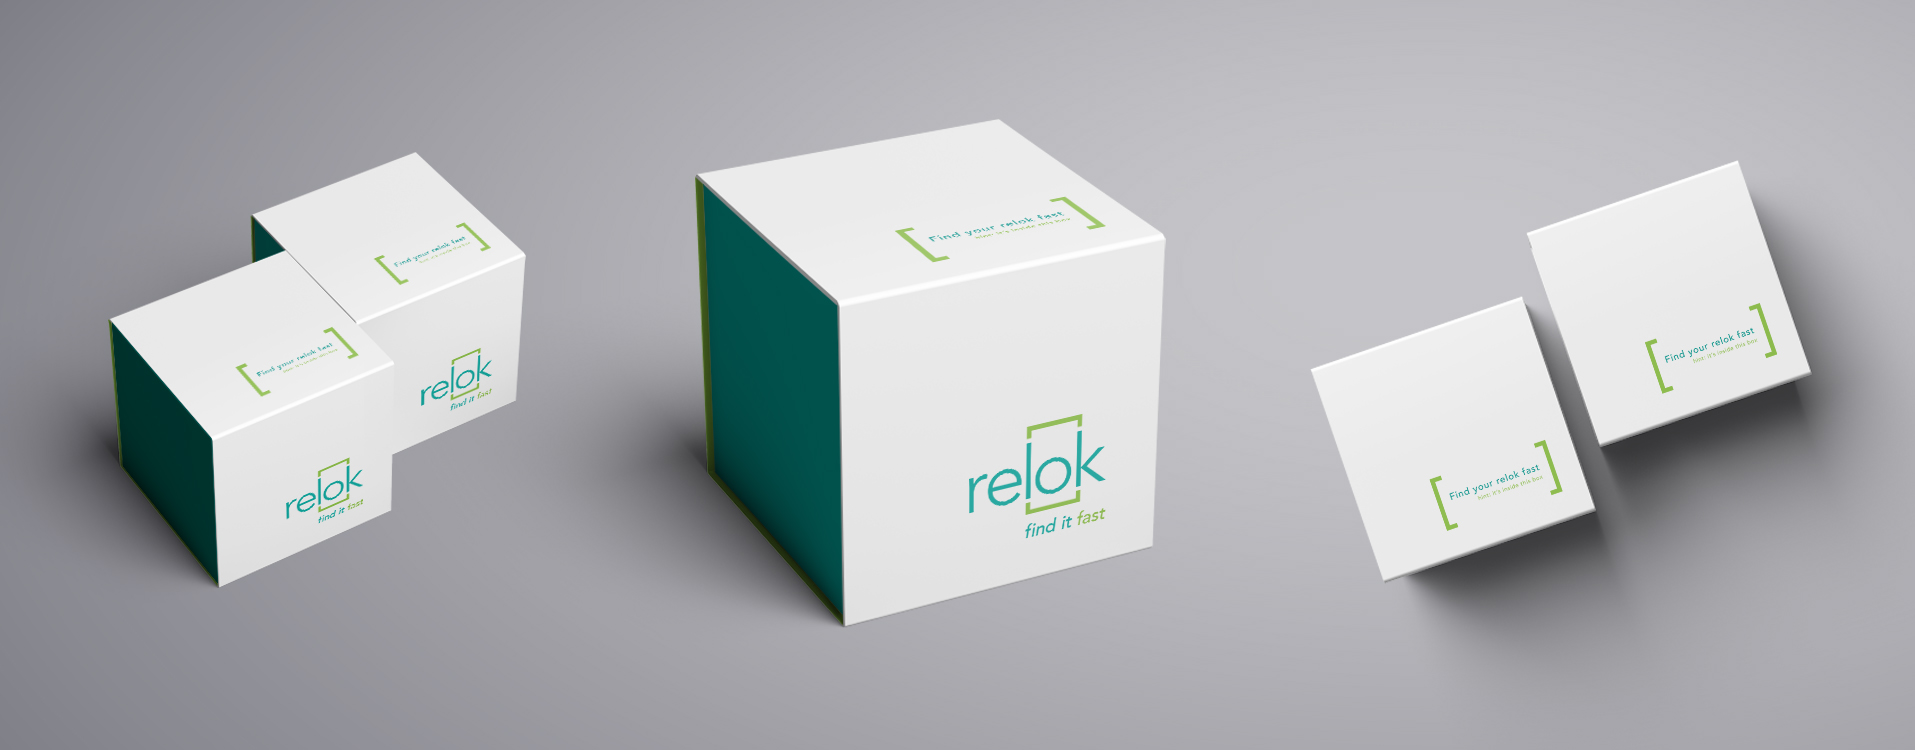 Slide Box Package Mockup2.jpg